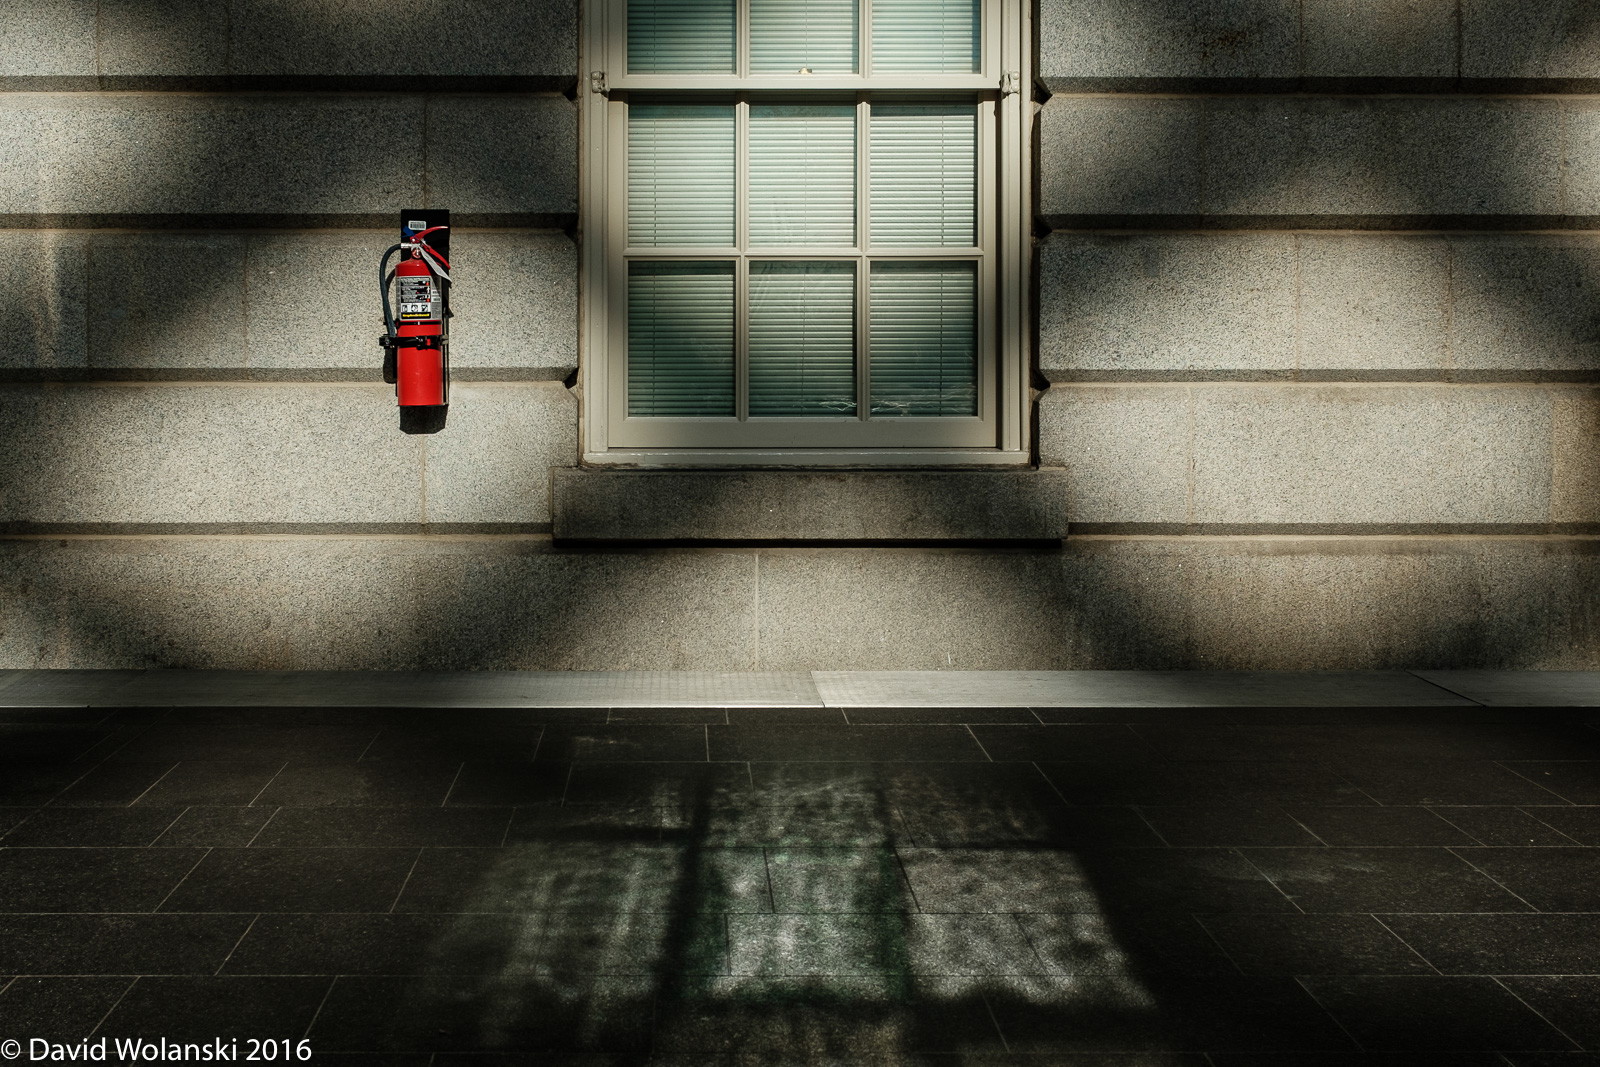 This fire extinguisher grabbed my eye in the grid, then I notice the shimmering light on the slate floor from the window. Wow!